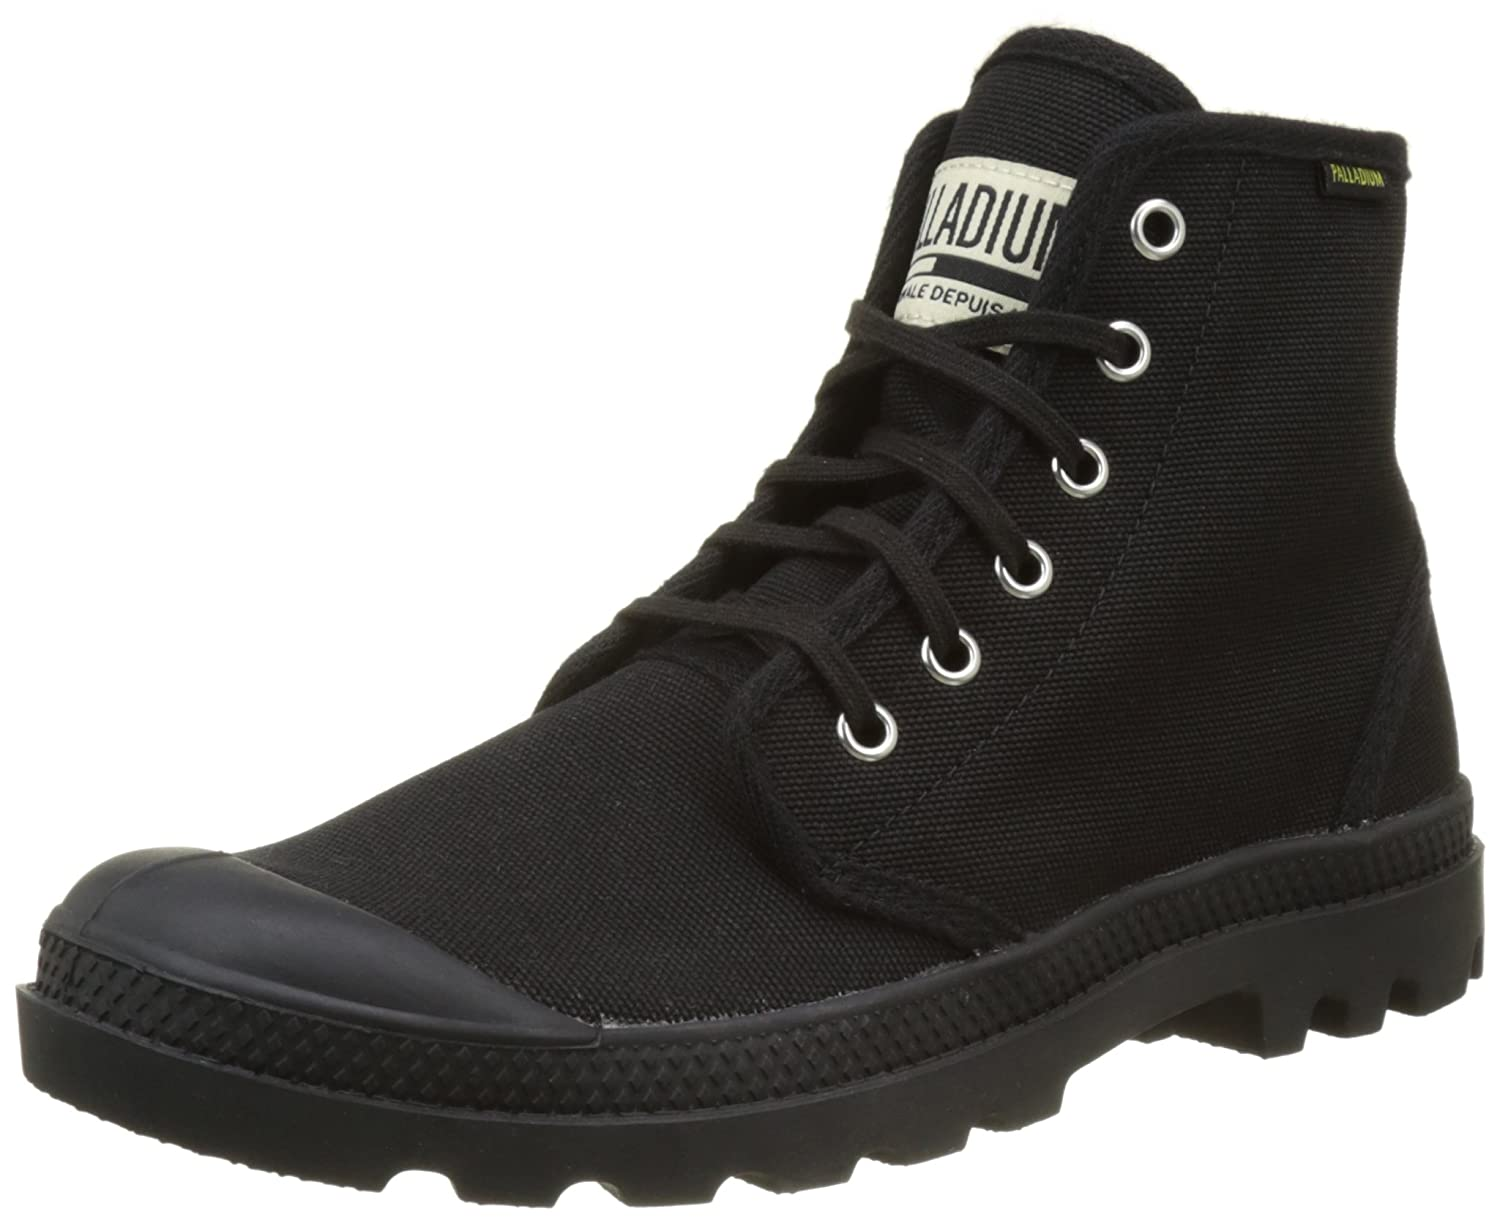 Palladium Men's Pampa Hi Originale Chukka Boot B01IU8IL18 6 D(M) US|Black/Black